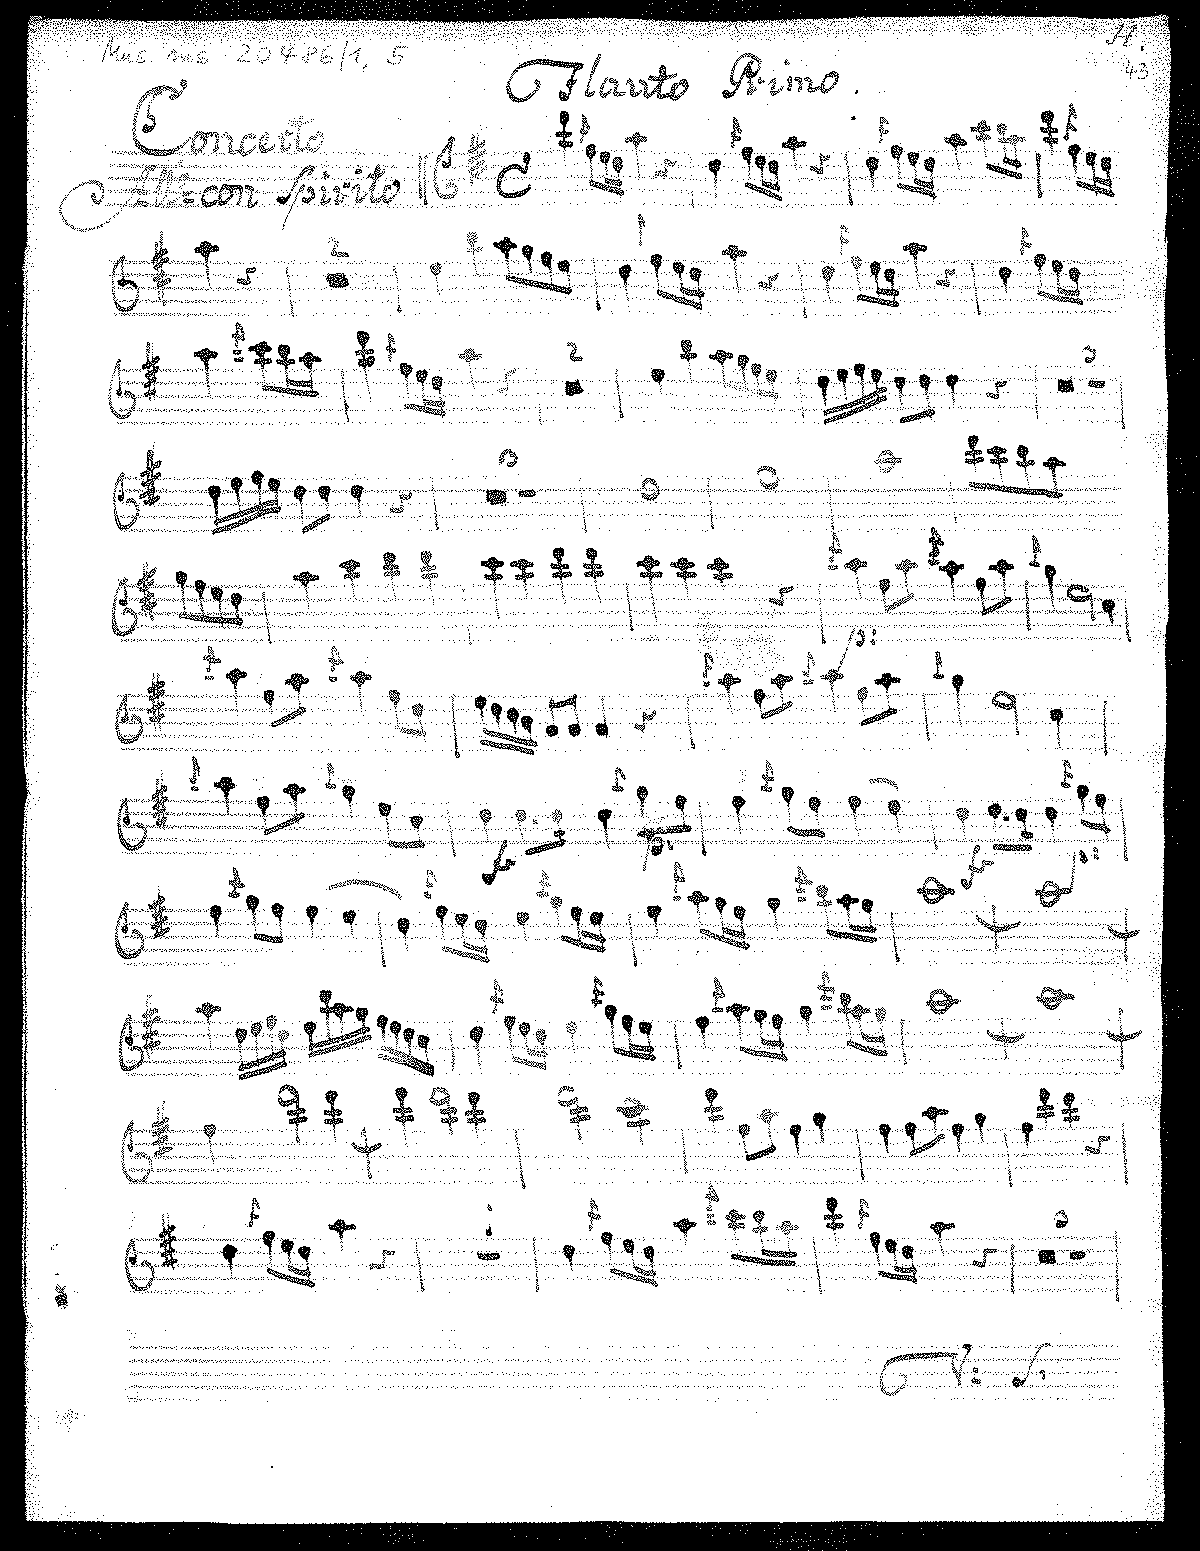 PMLP549232-Schuster - Concerto for 2 harpsichords - incomplete parts - winds.PDF